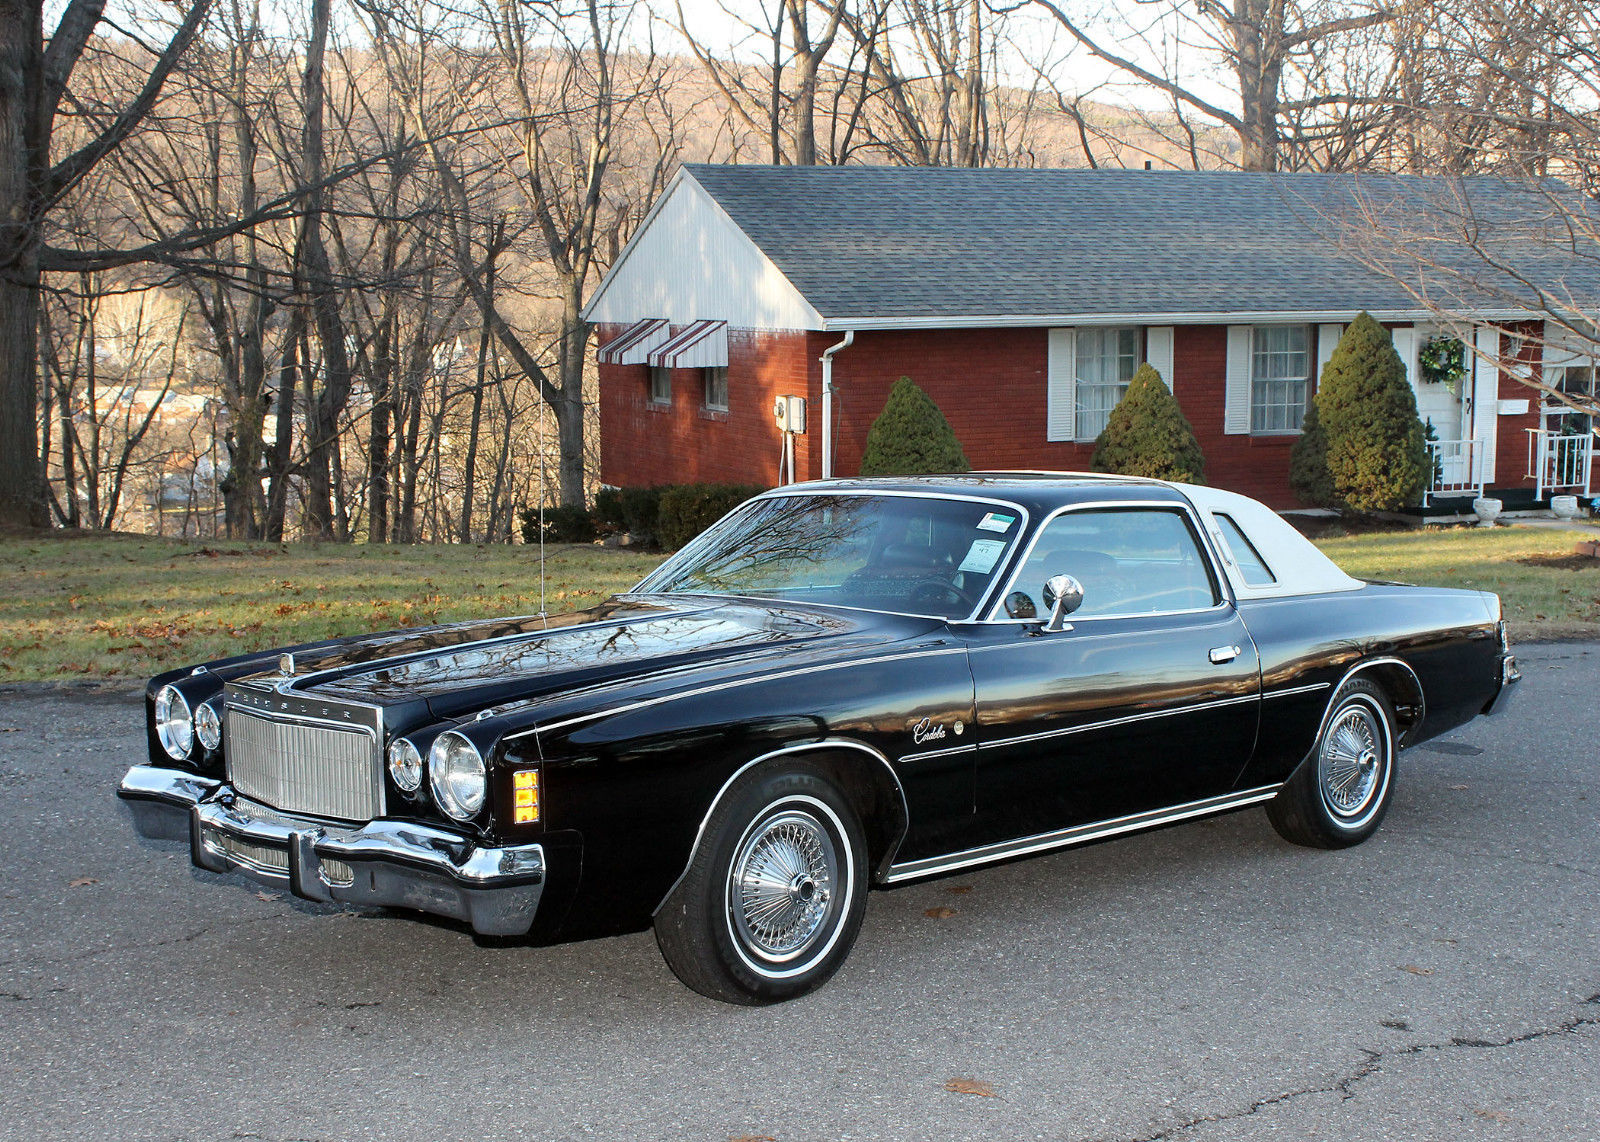 All American Classic Cars 1975 Chrysler Cordoba 2 Door Coupe